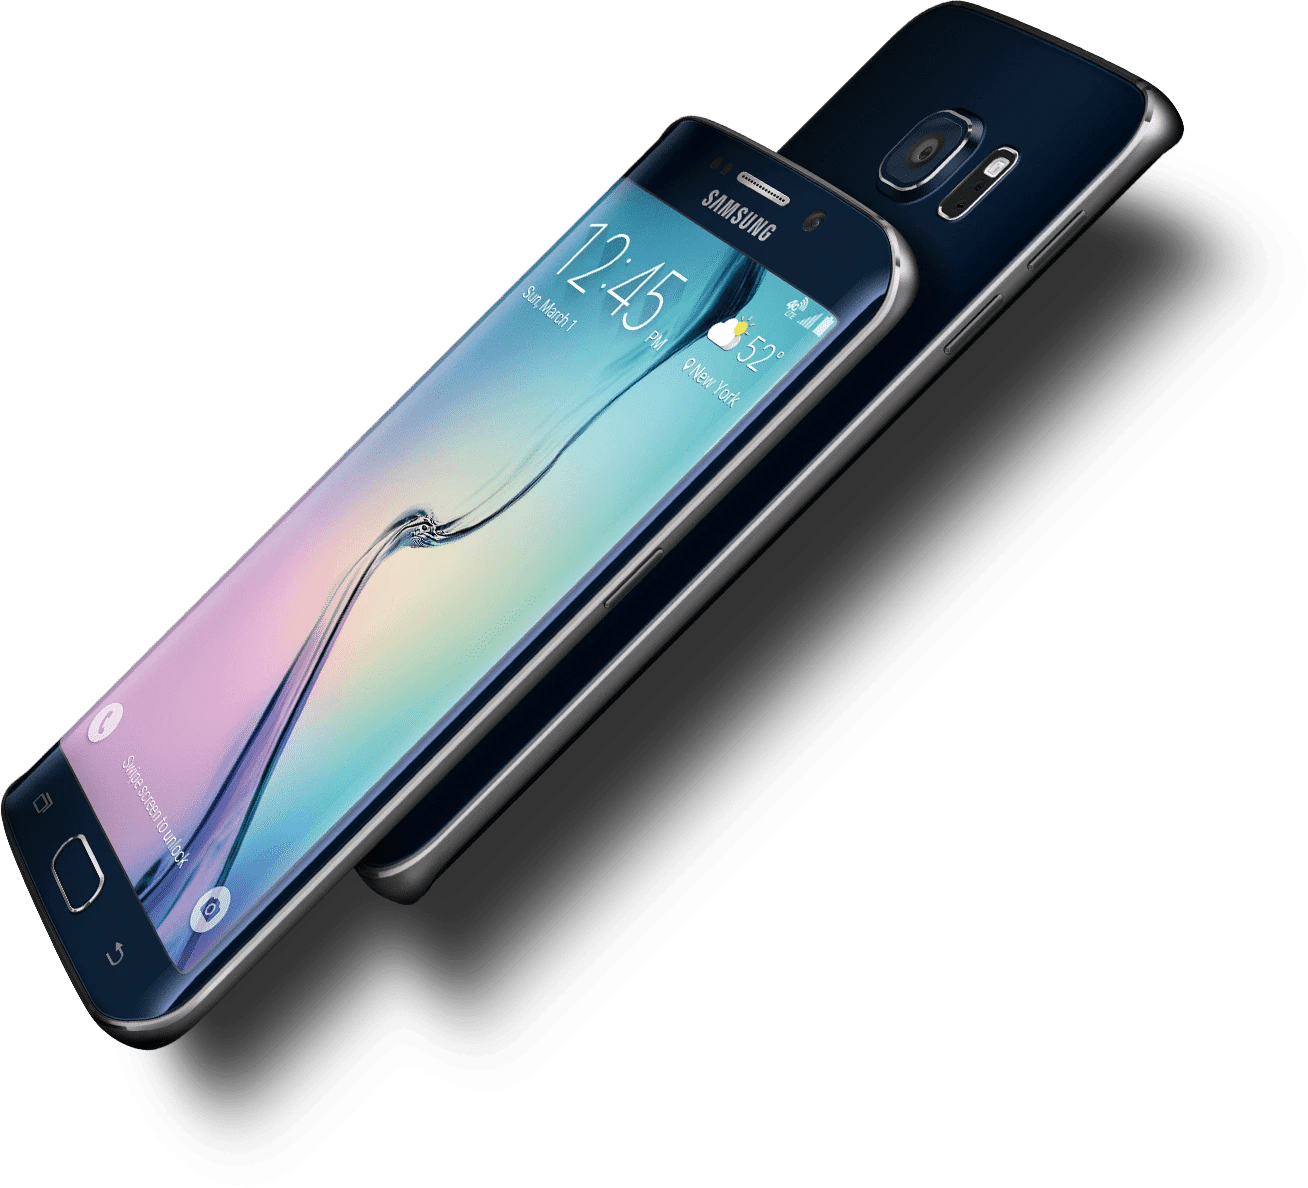 Samasung Galaxy S6 Edge black-e